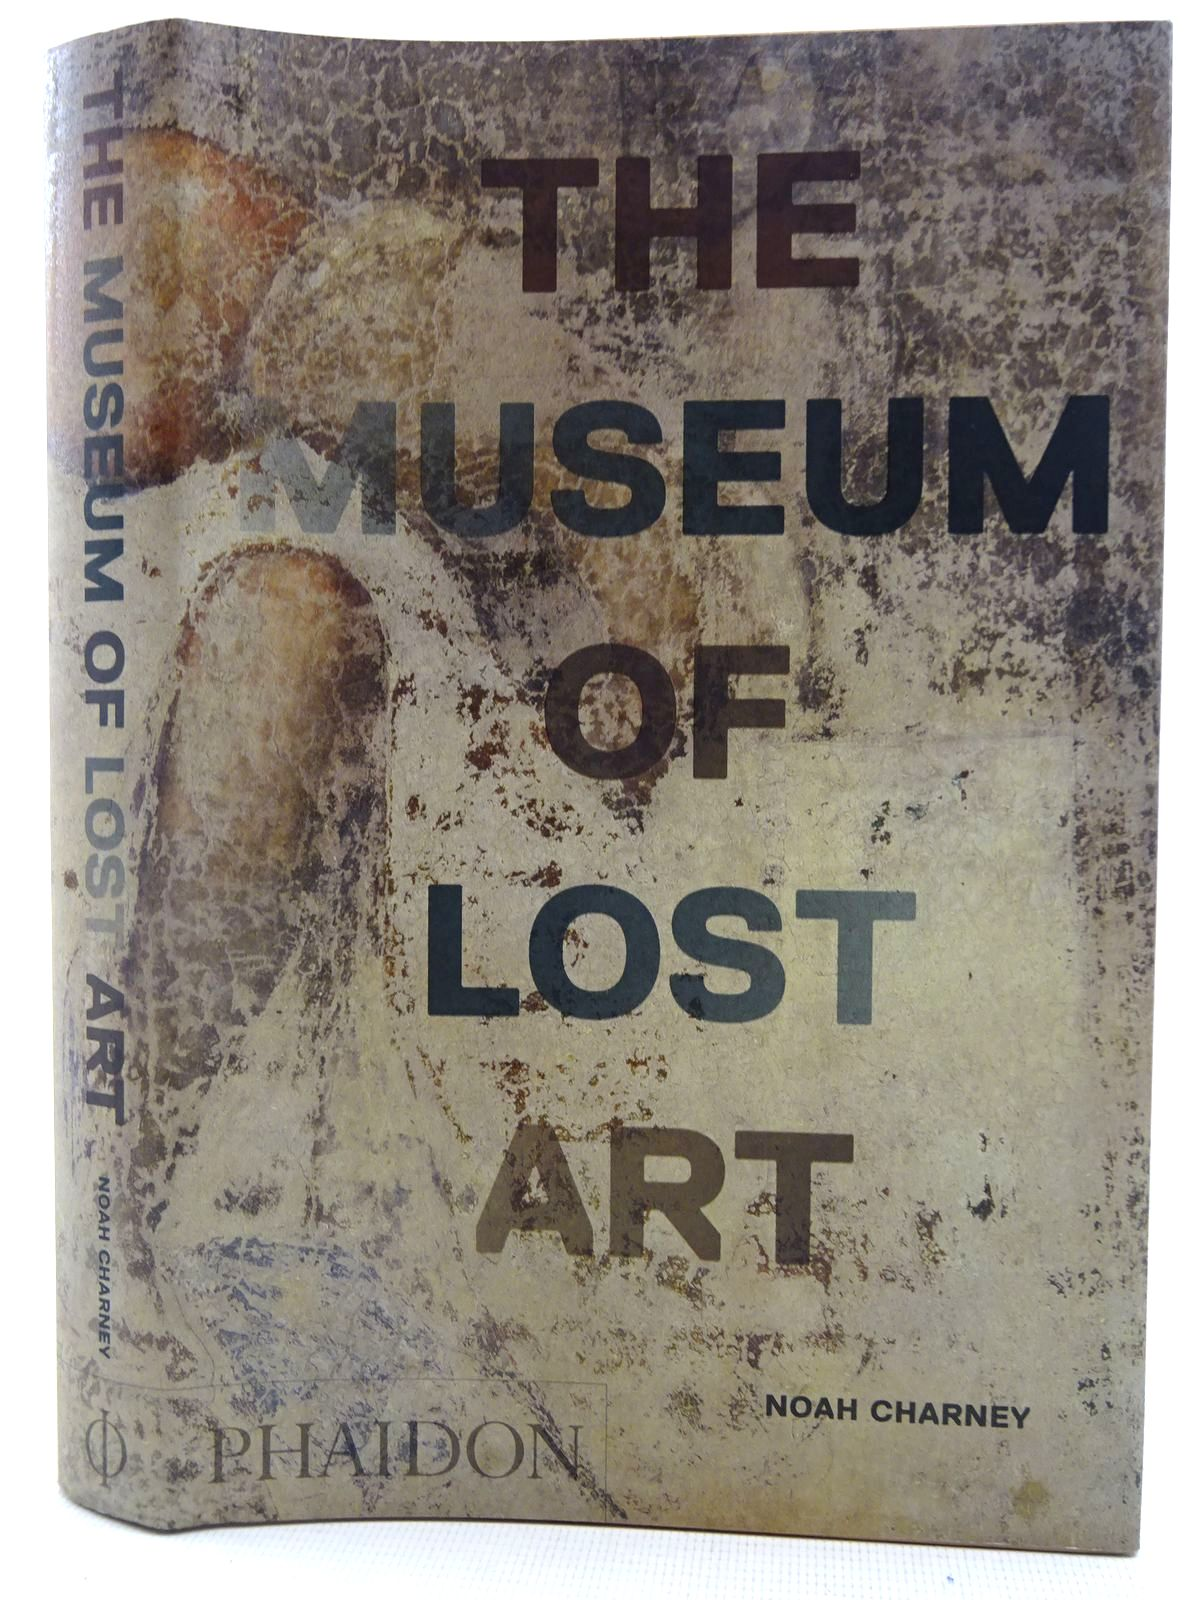 Photo of THE MUSEUM OF LOST ART written by Charney, Noah published by Phaidon Press Limited (STOCK CODE: 2128283)  for sale by Stella & Rose's Books